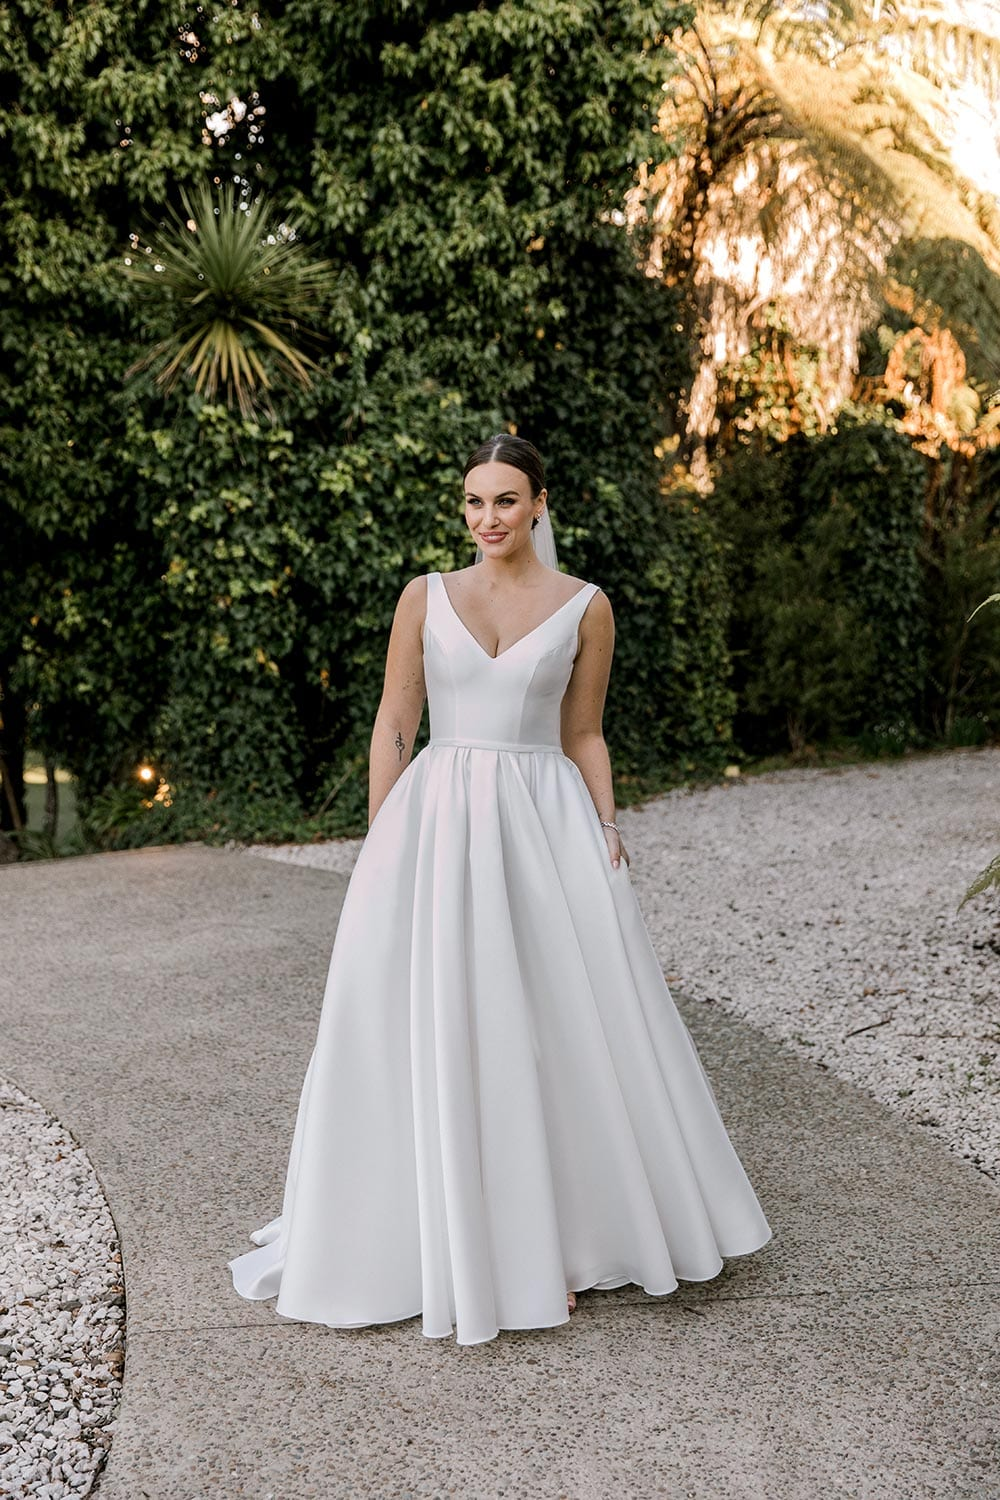 Madison Wedding Dress from Vinka Design. Classic Mikado satin wedding dress. Structured bodice with deep V-neckline & low back. Side pockets in the skirt give fun & versatility, with a sweeping train. Full length of gown from the front. Photographed outdoors.